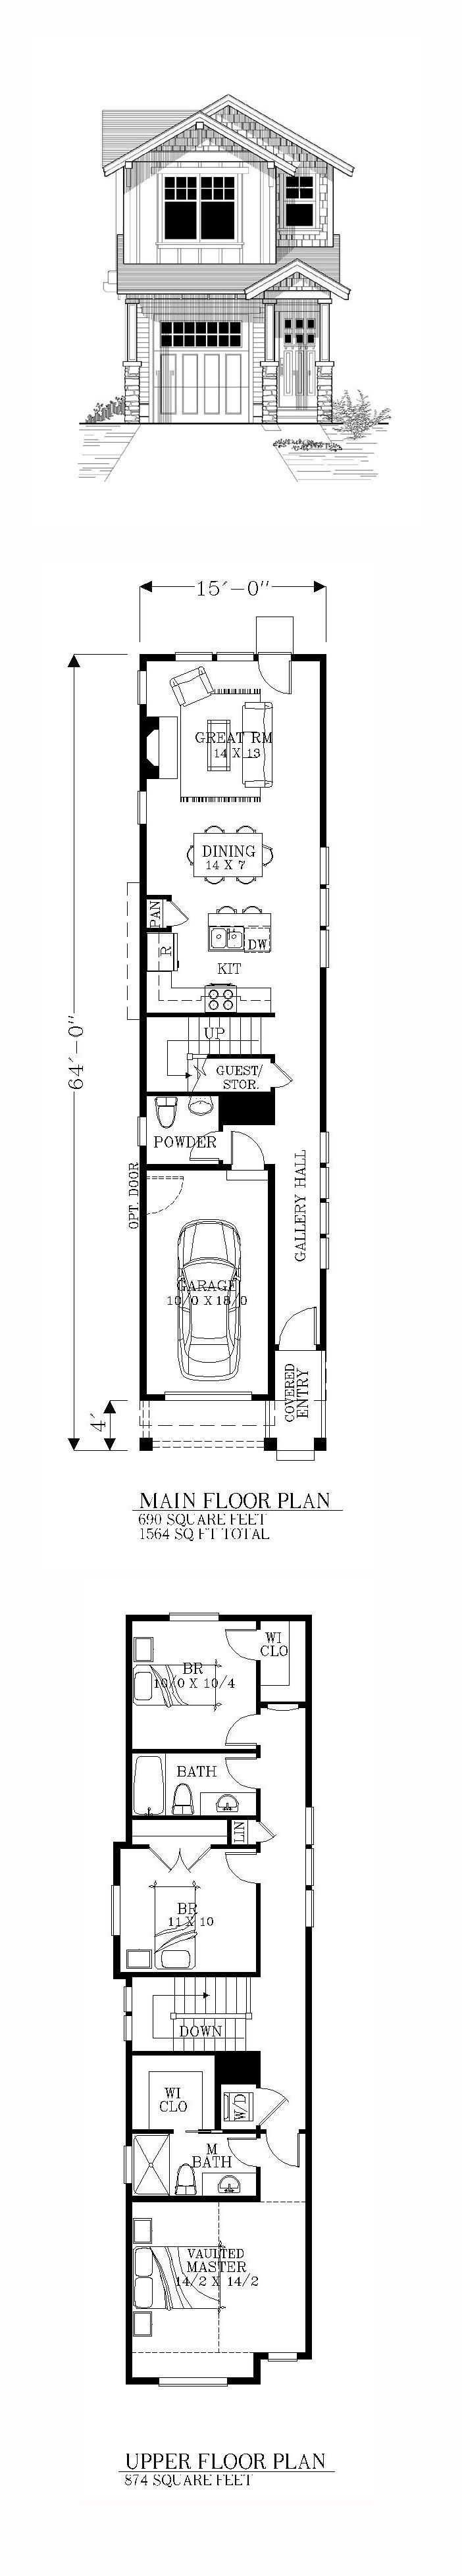 3 master bedroom house plans  Narrow Lot House Plan   Total Living Area  sq ft